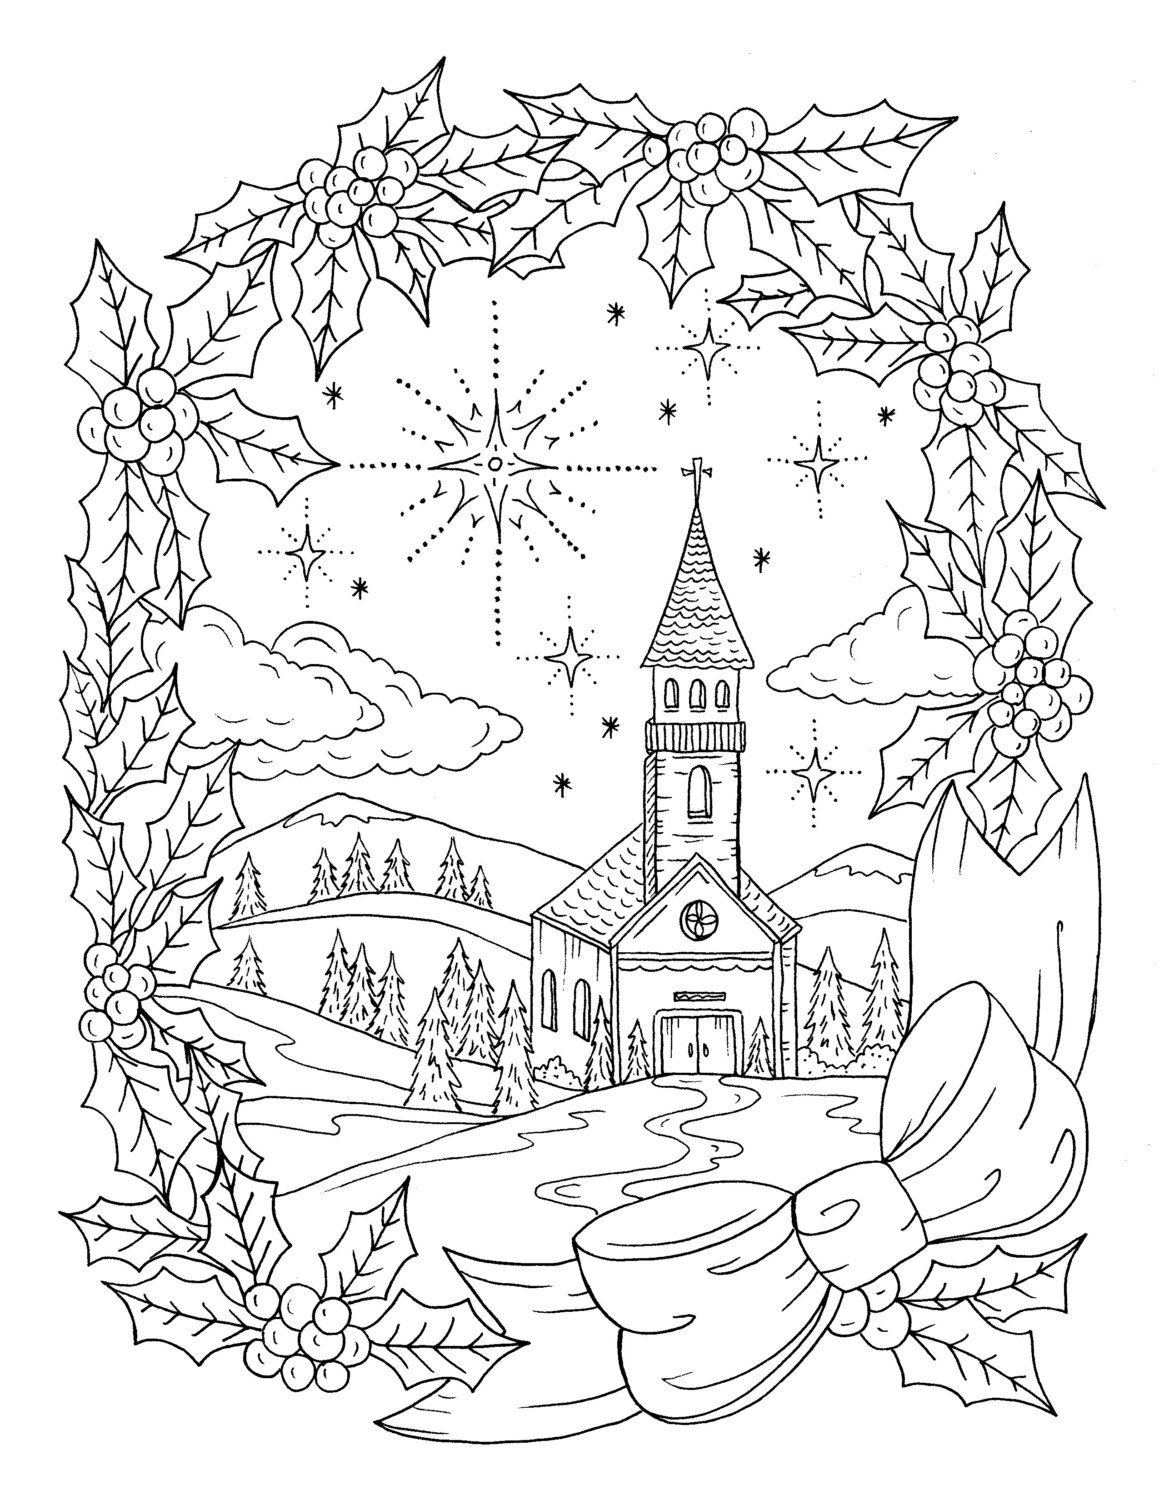 christmas coloring page instant download adult coloring christmas coloring pages coloring book pages coloring